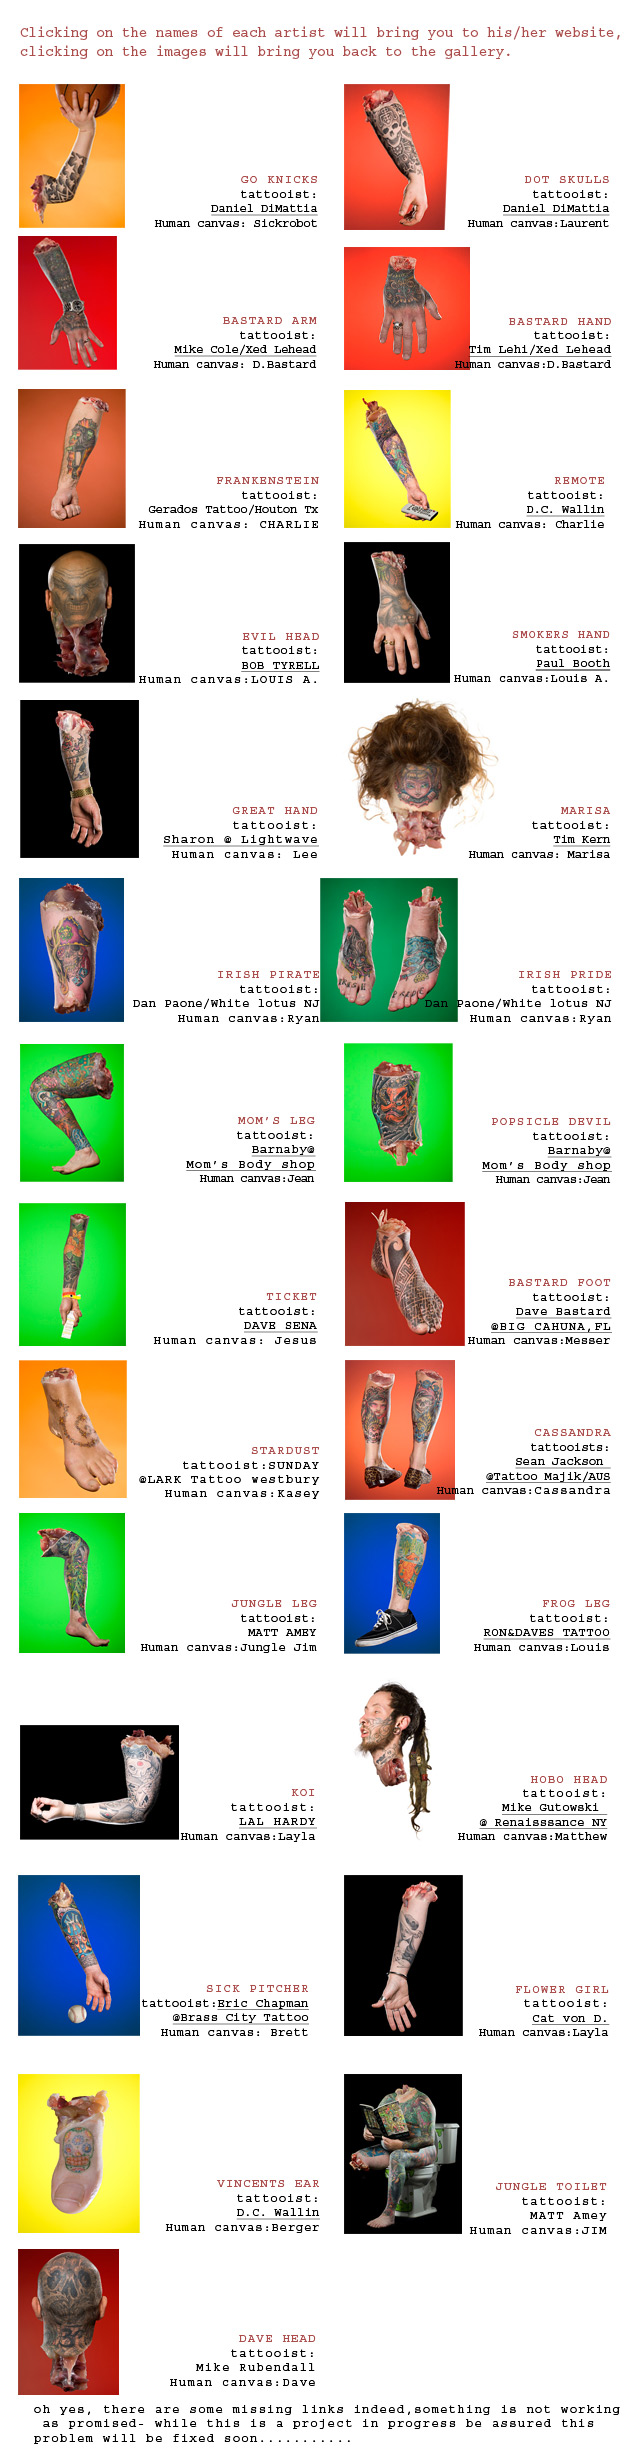 cheap tattoo removal, tattooectomy At discount prices, Till Krautkramer, Till krautkraemer, Till Krautkrämer, www.tillfoto.com